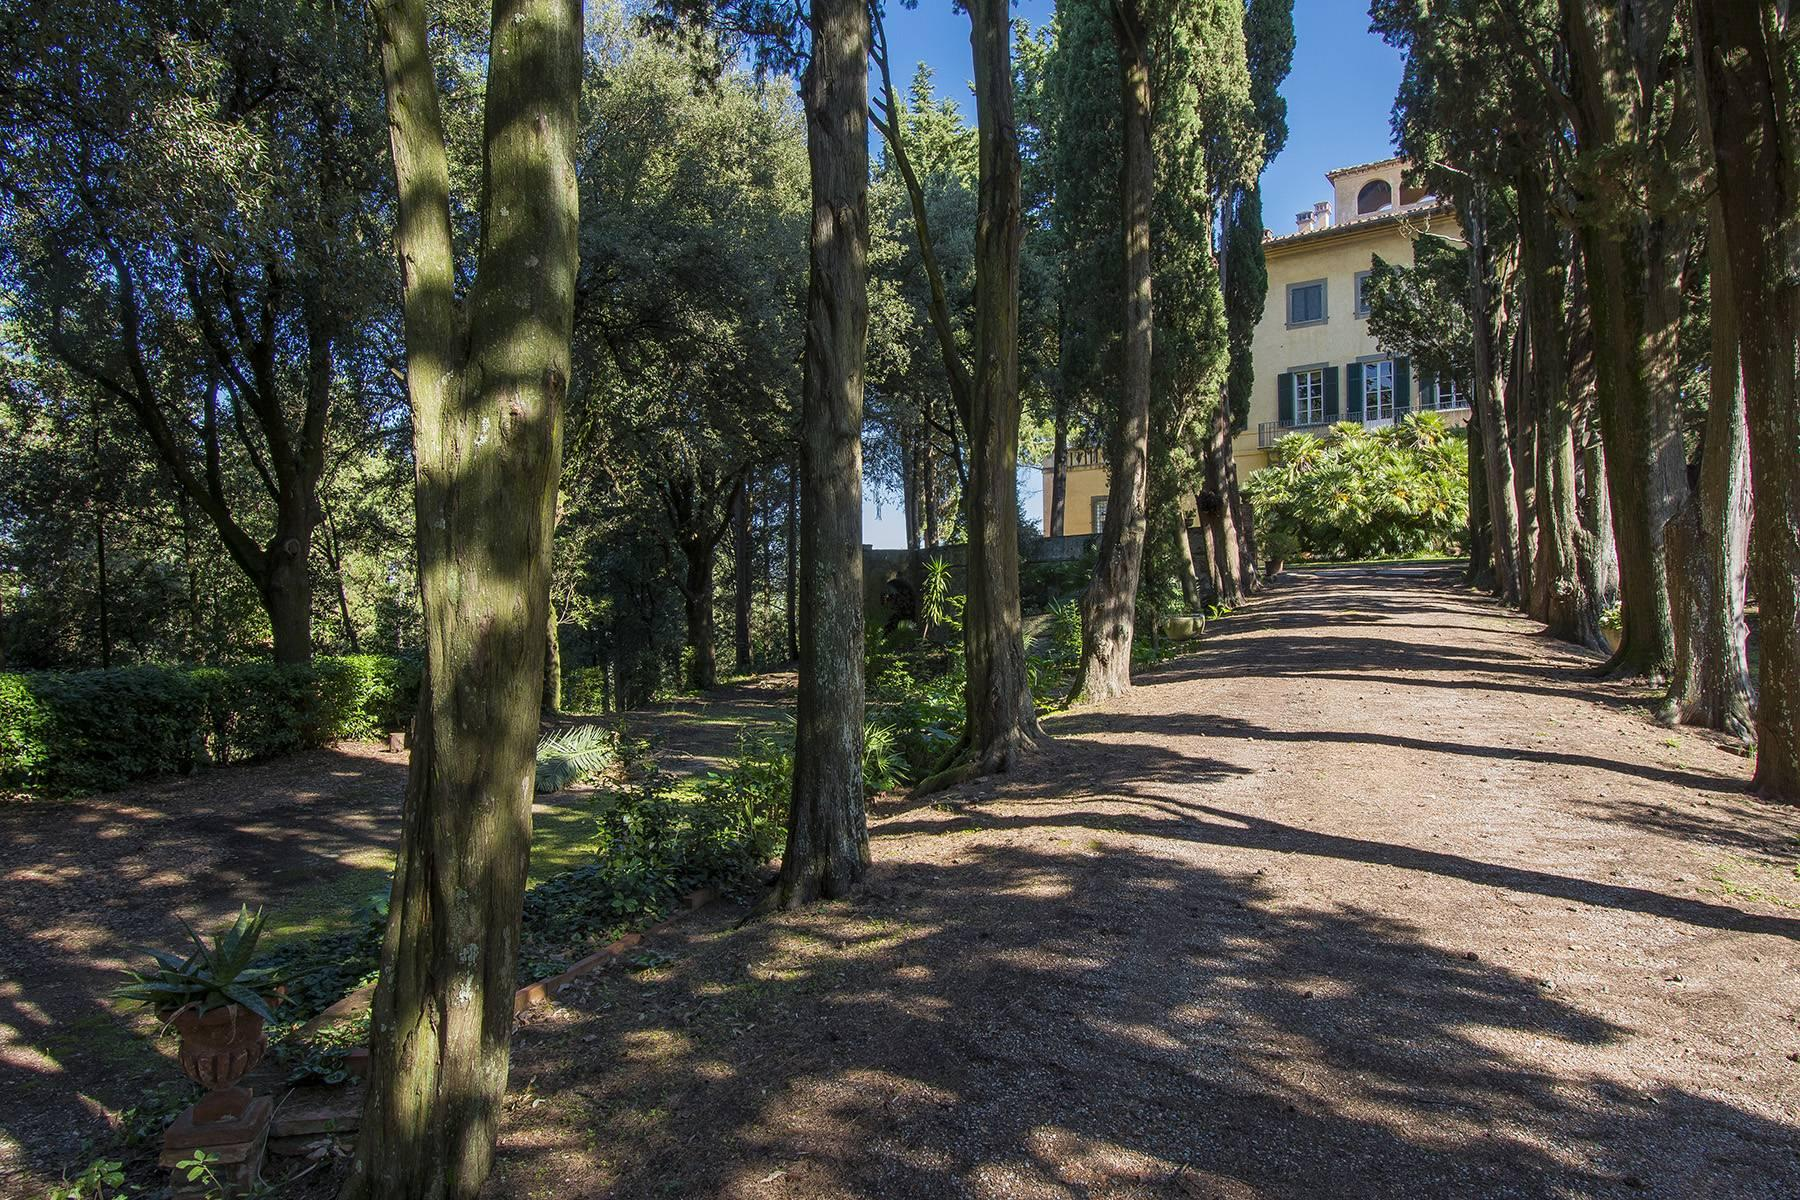 Charming Medicean Villa on the Tuscan hills - 30